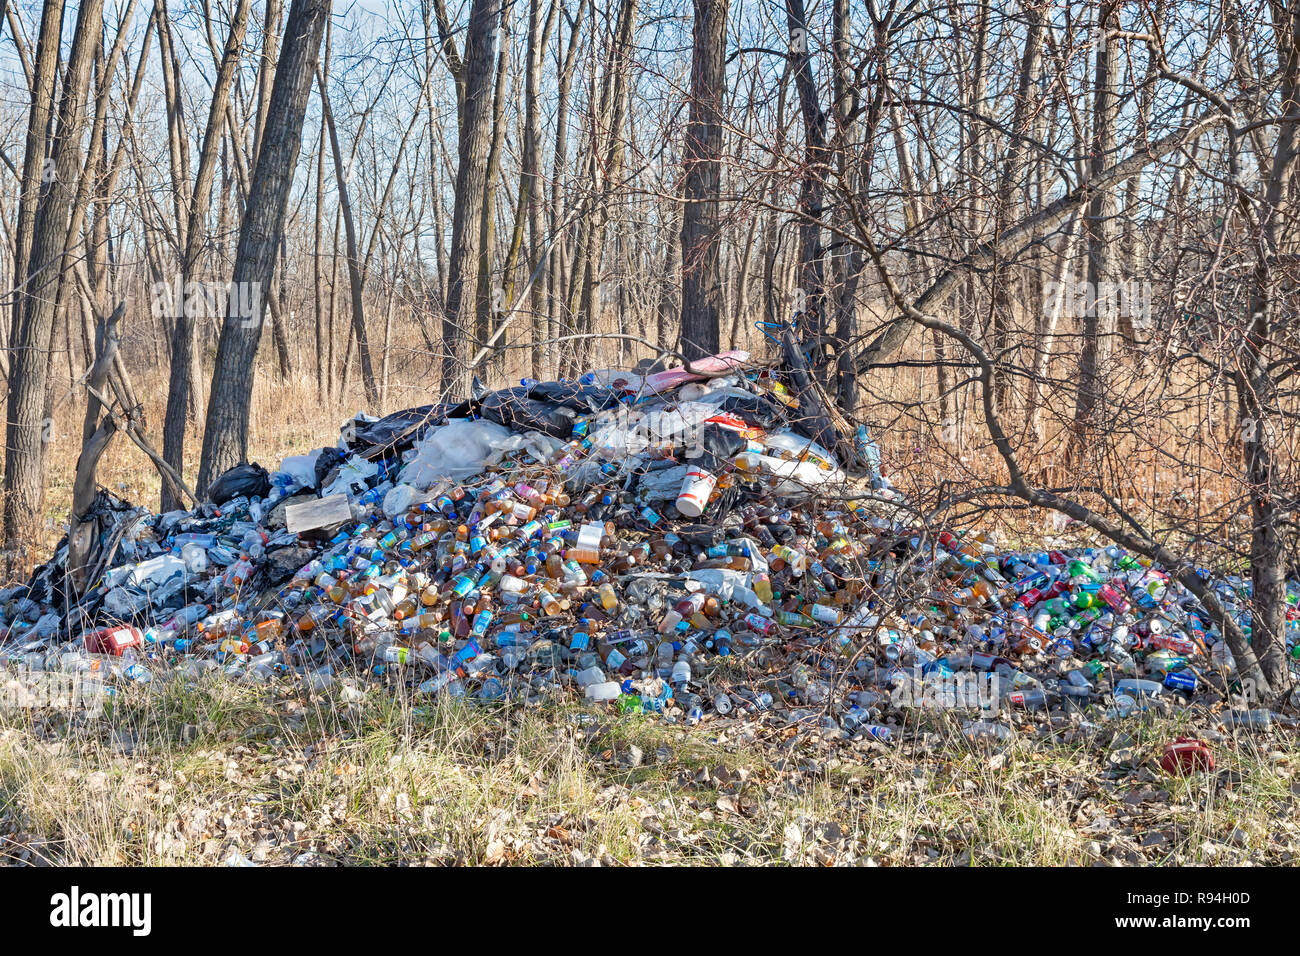 Detroit, Michigan - Many hundreds of bottles and cans illegally dumped in a wooded area near downtown. Many are juice or water containers, which are n - Stock Image